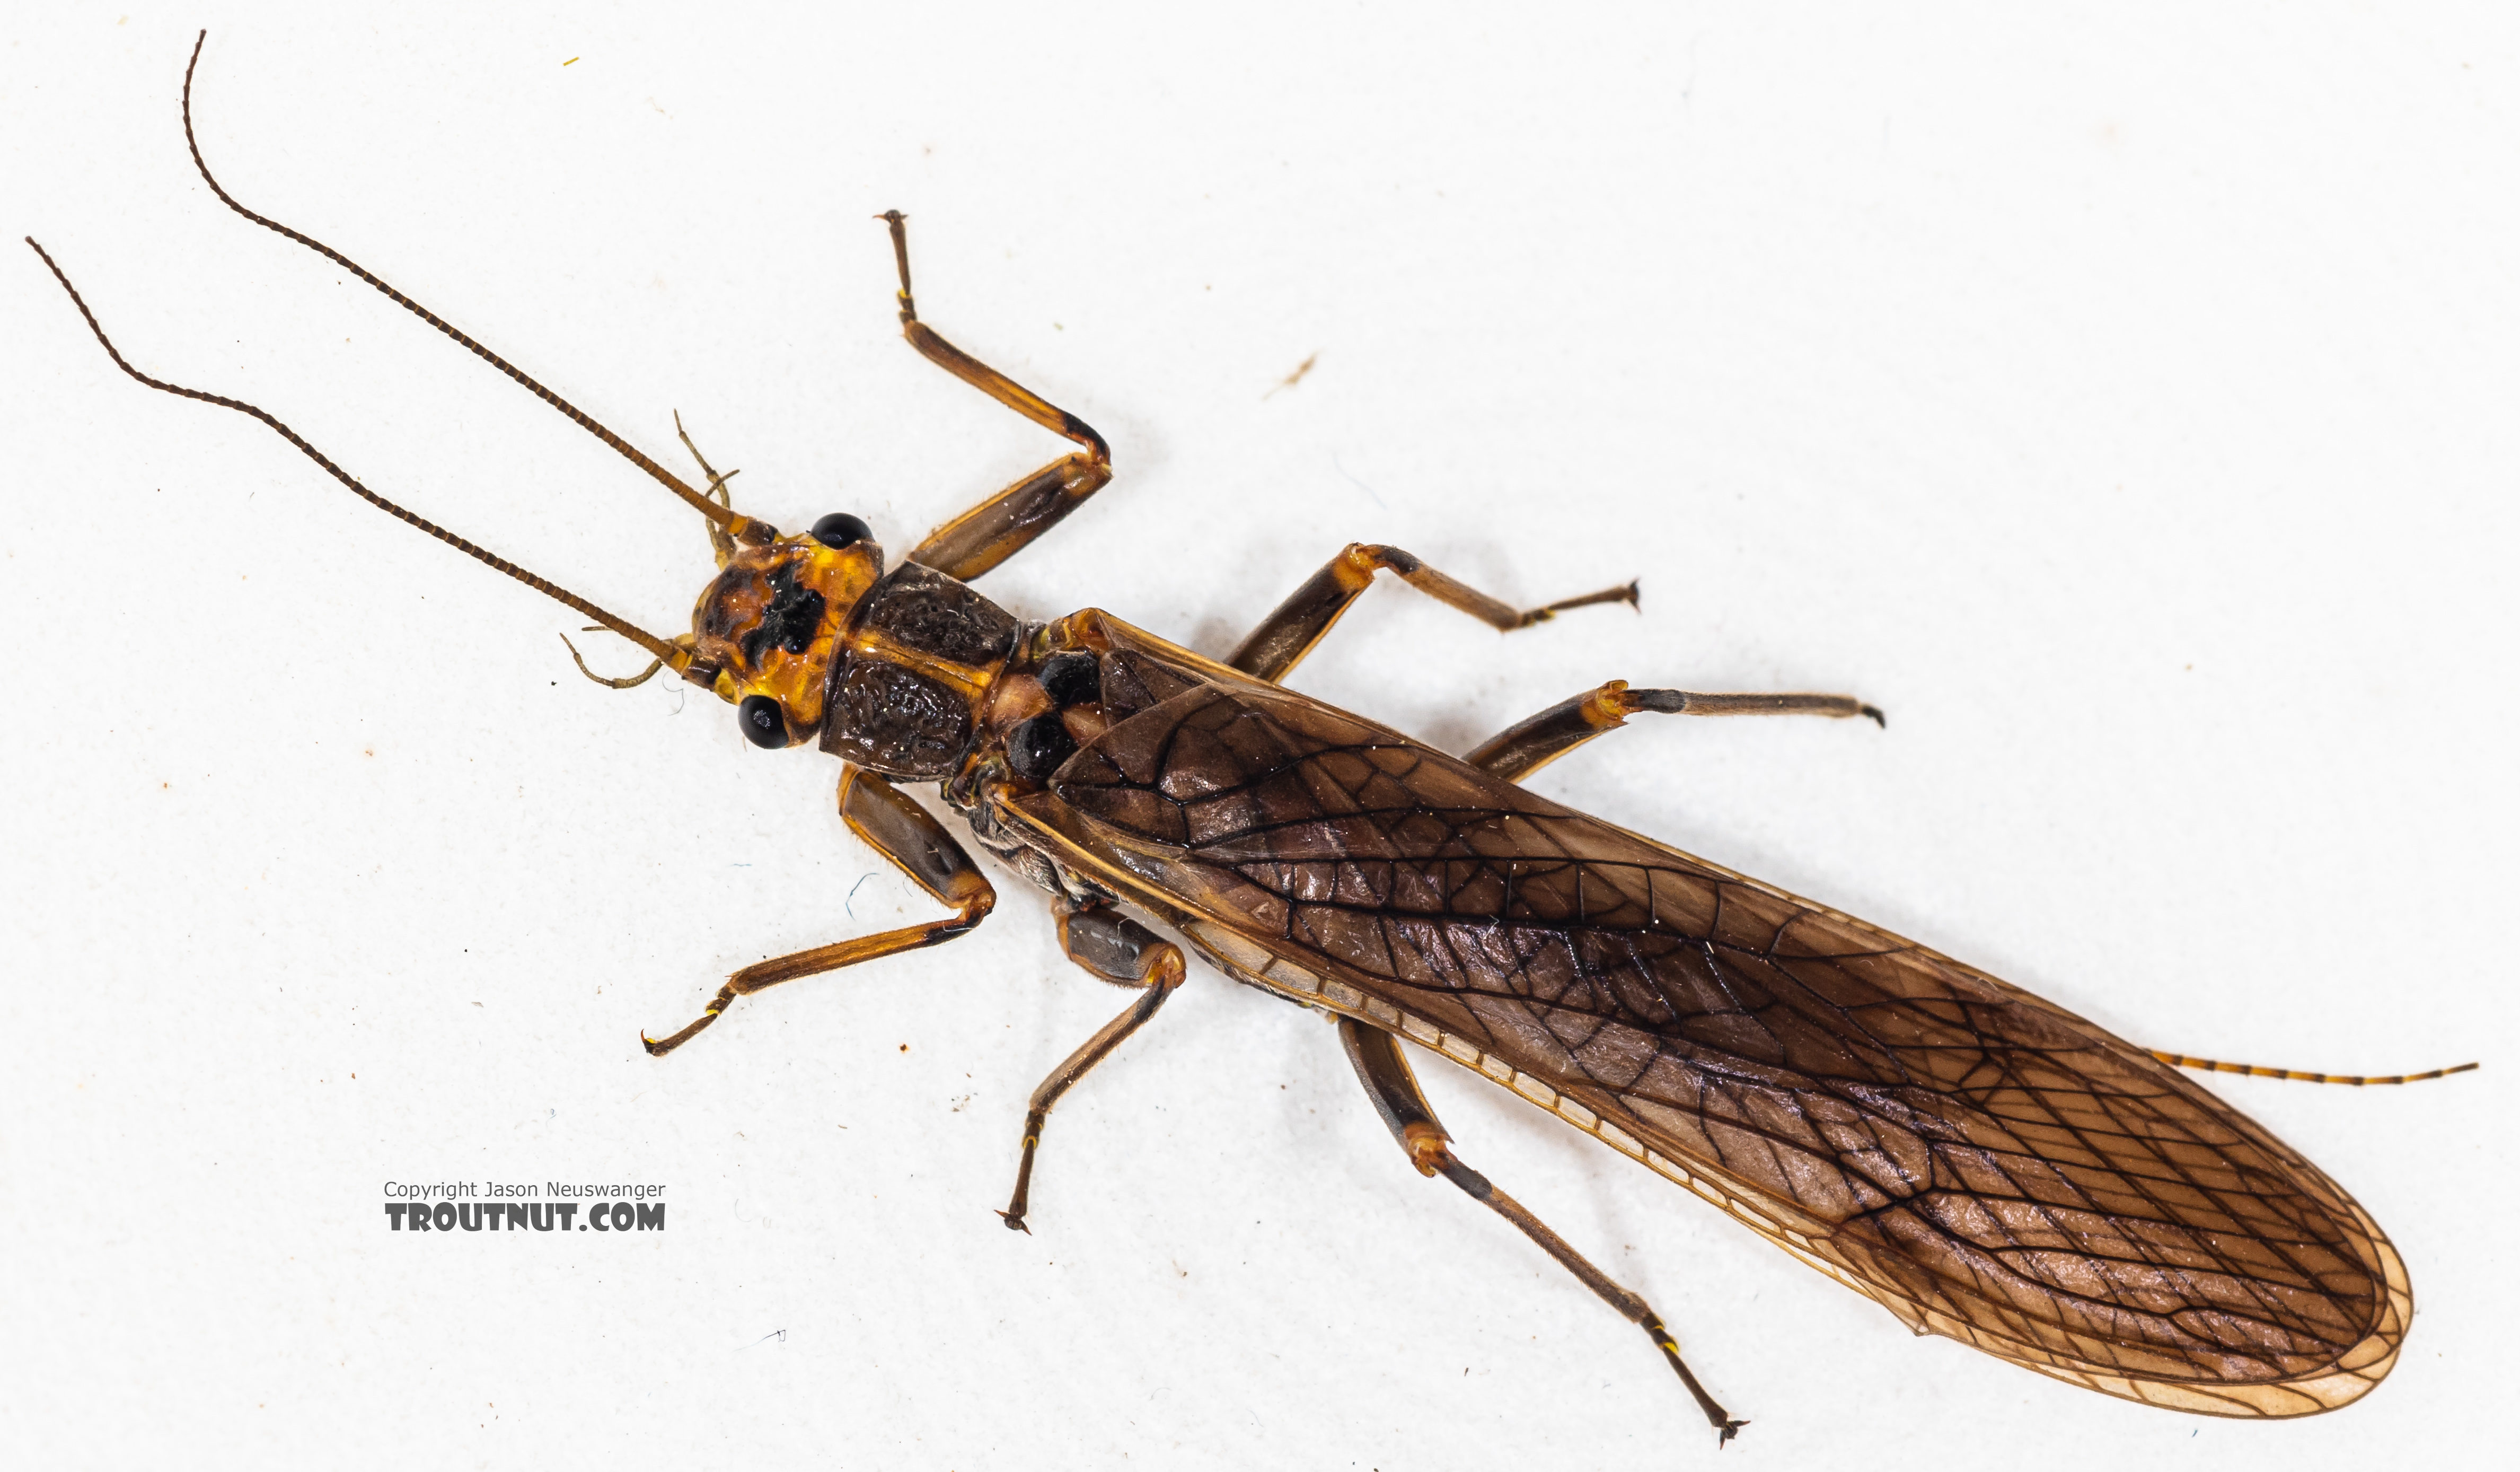 Male Calineuria californica (Golden Stone) Stonefly Adult from the South Fork Snoqualmie River in Washington